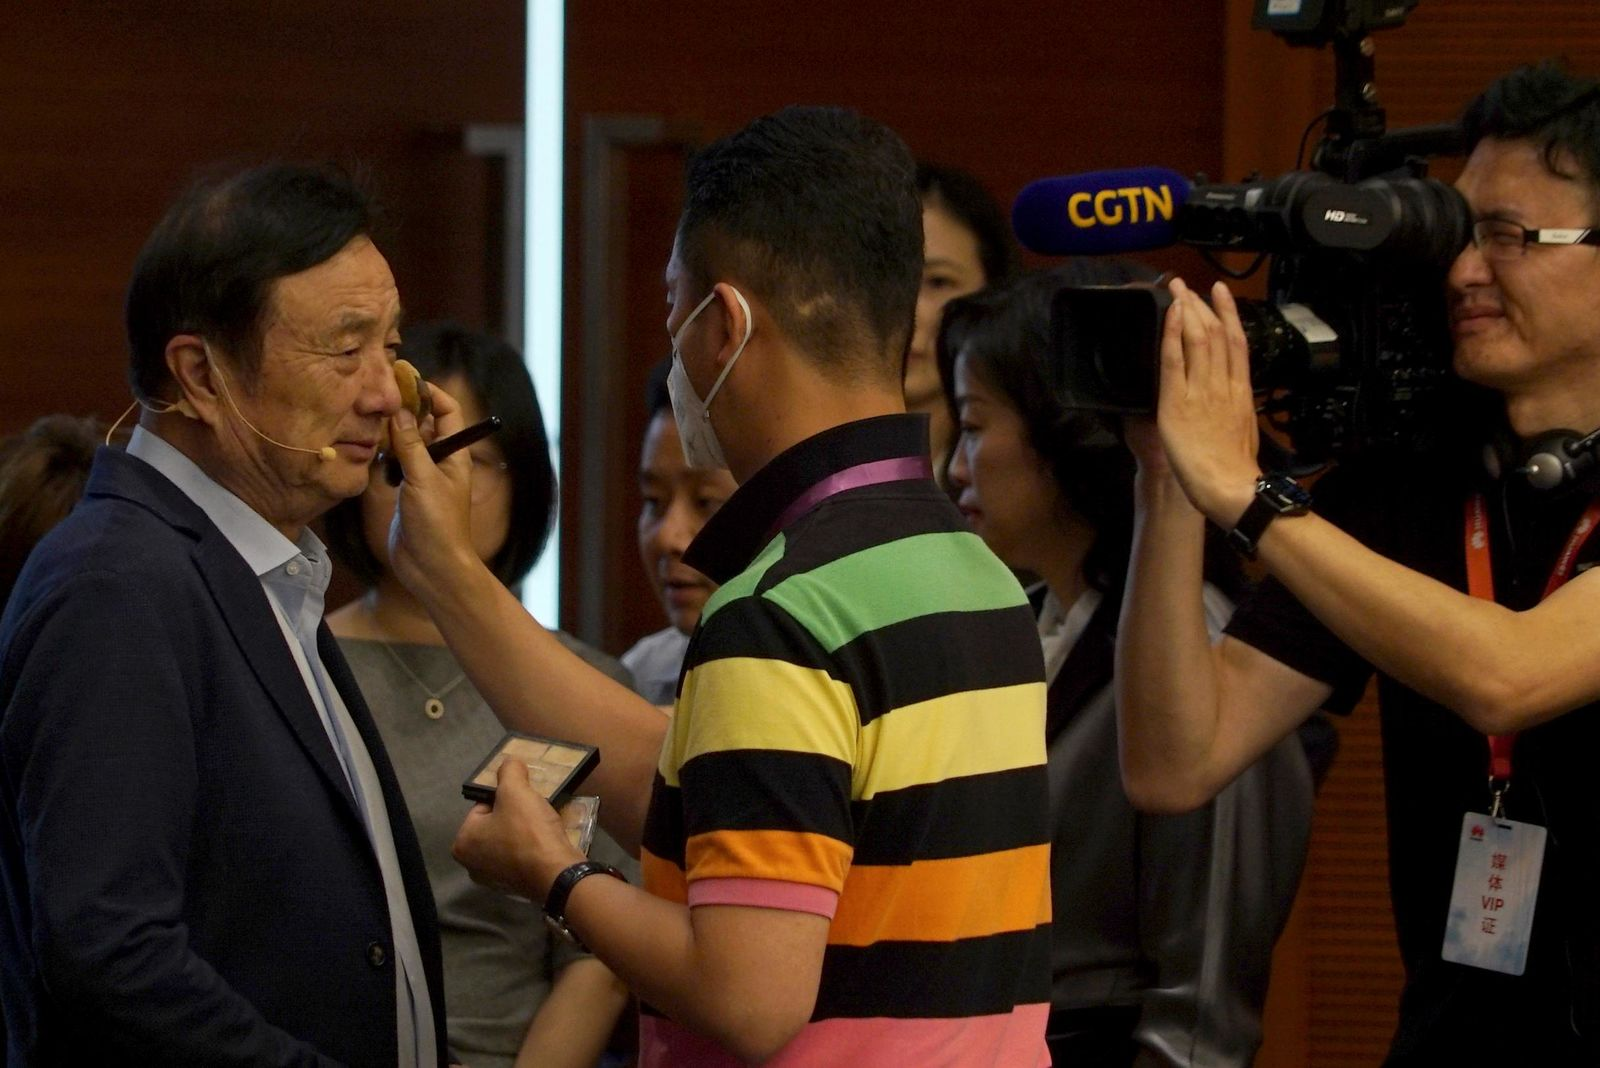 Huawei founder Ren Zhengfei, left, gets make up on his face before attending a roundtable at the telecom giant's headquarters in Shenzhen in southern China on Monday, June 17, 2019.{ } (AP Photo/Dake Kang)